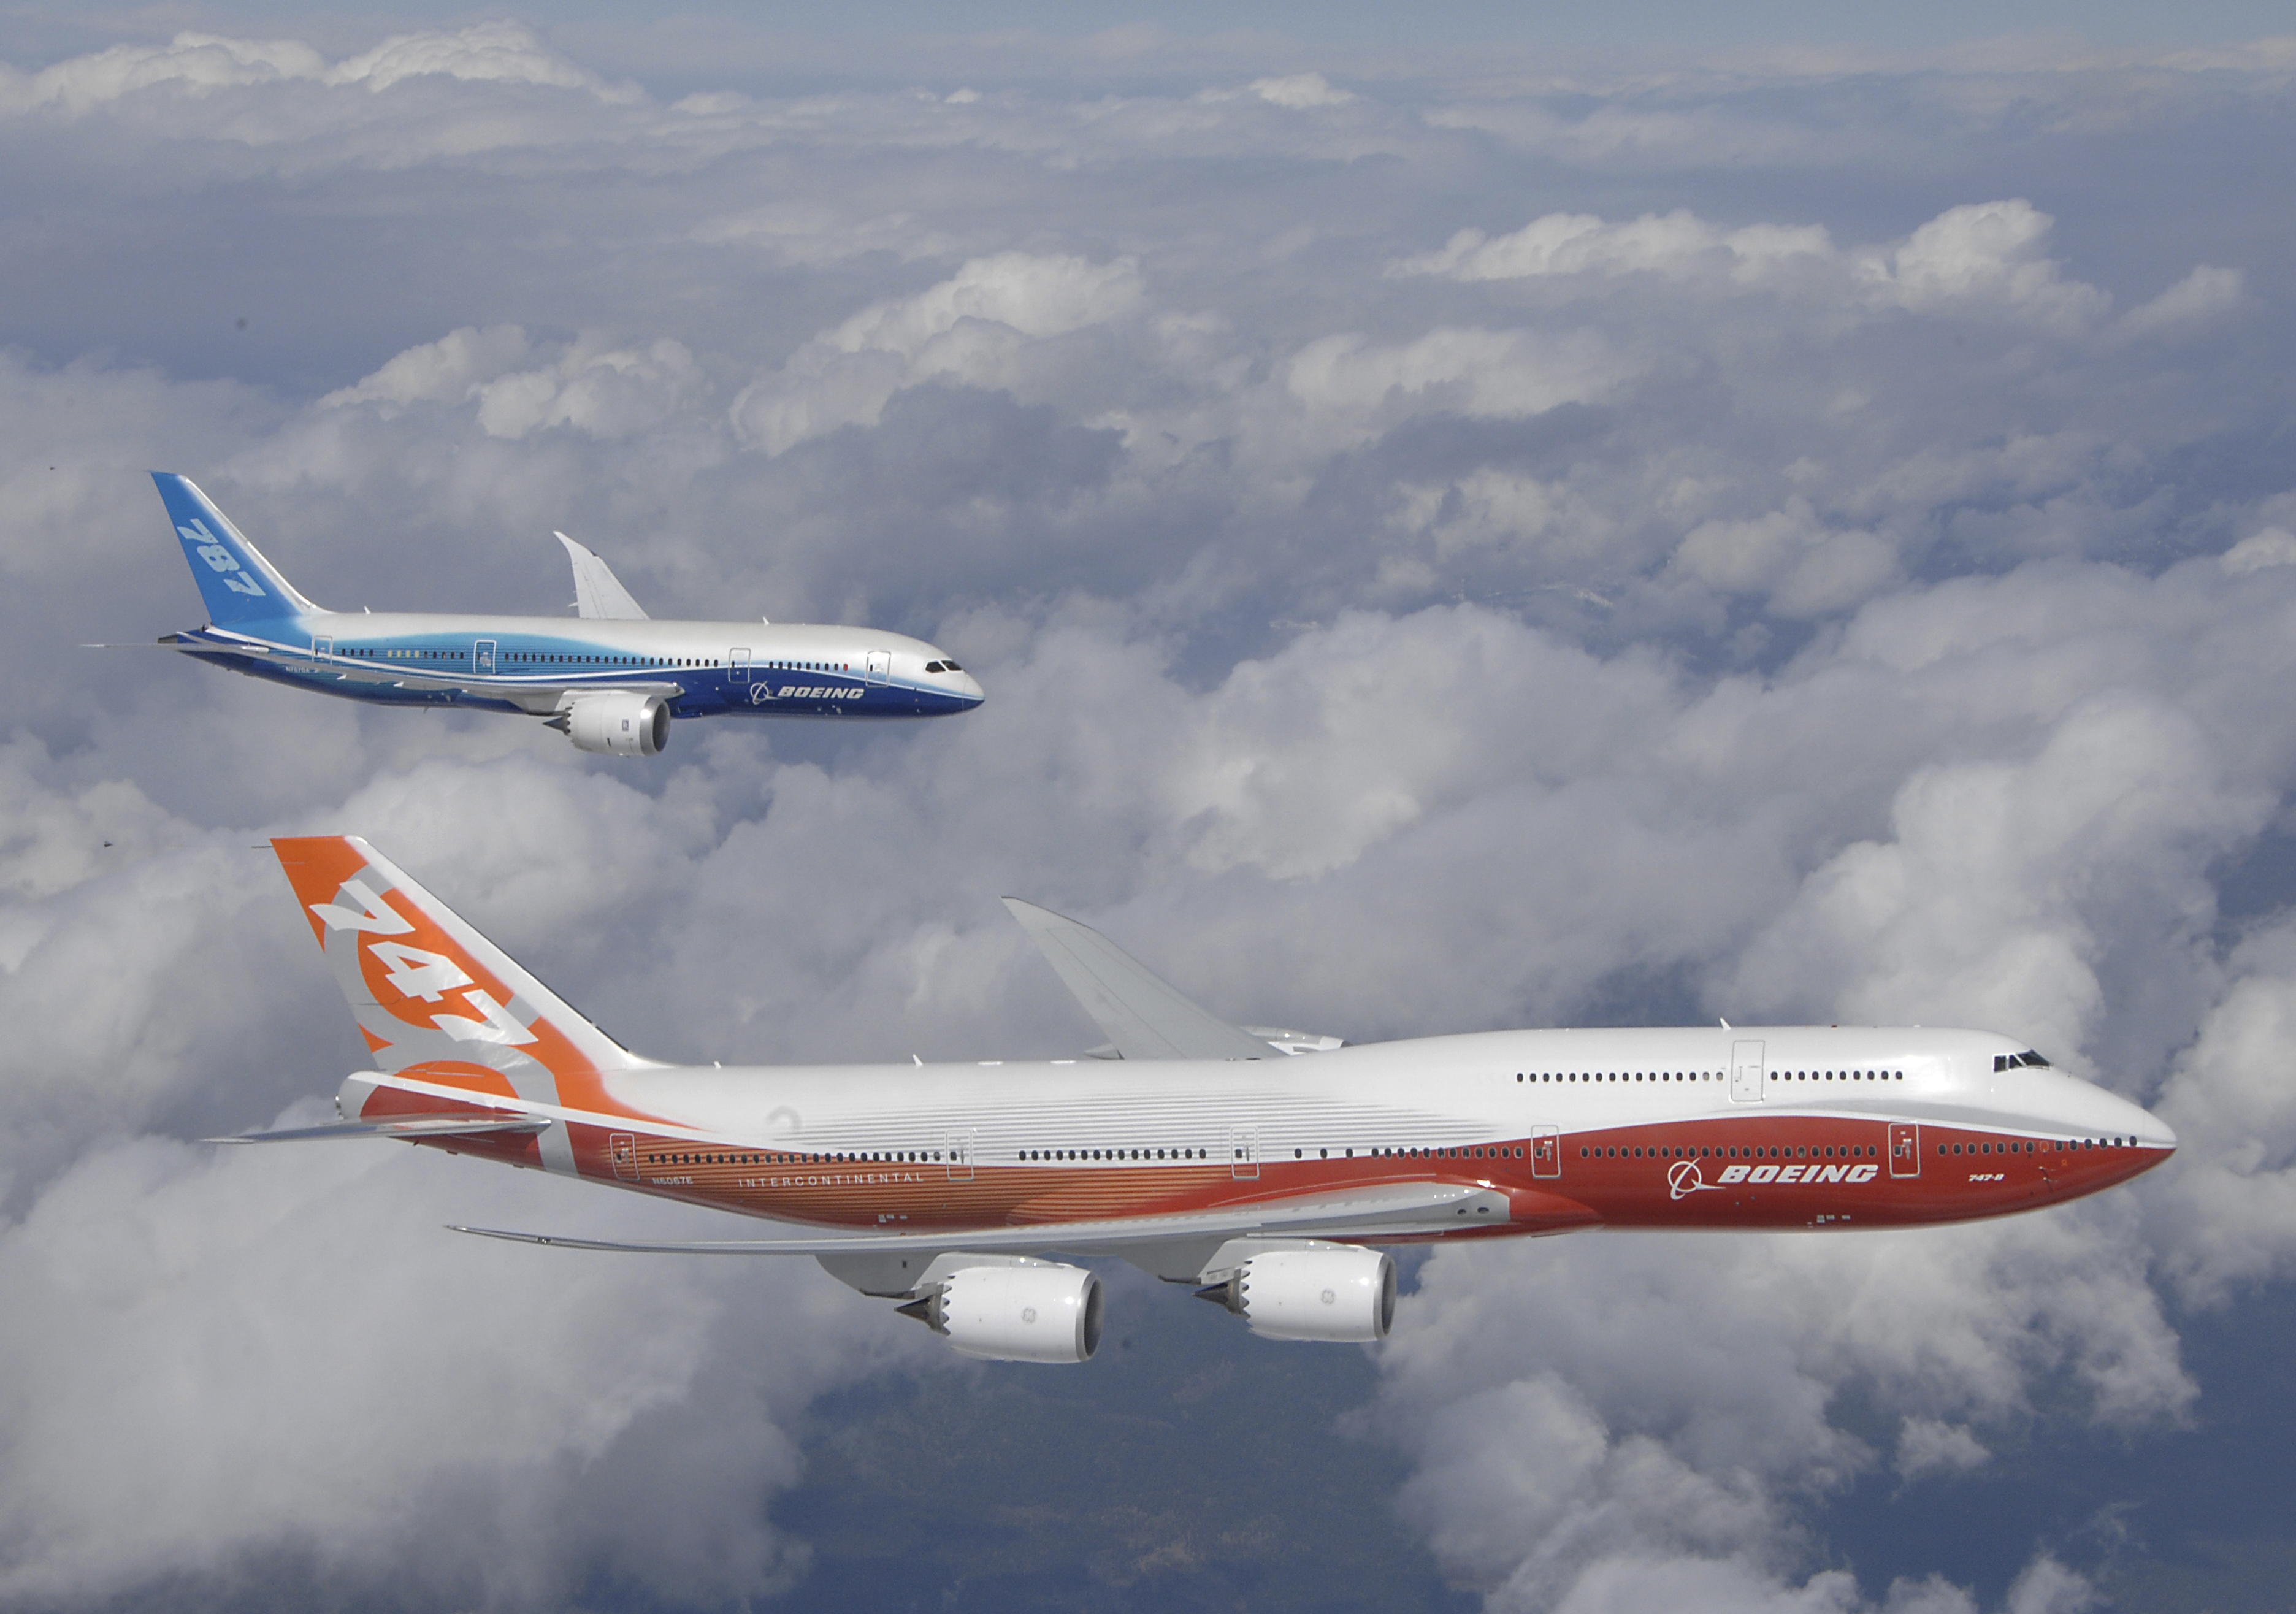 Boeing 747-8 Intercontinental Archives - Page 6 of 11 - AirlineReporter : AirlineReporter